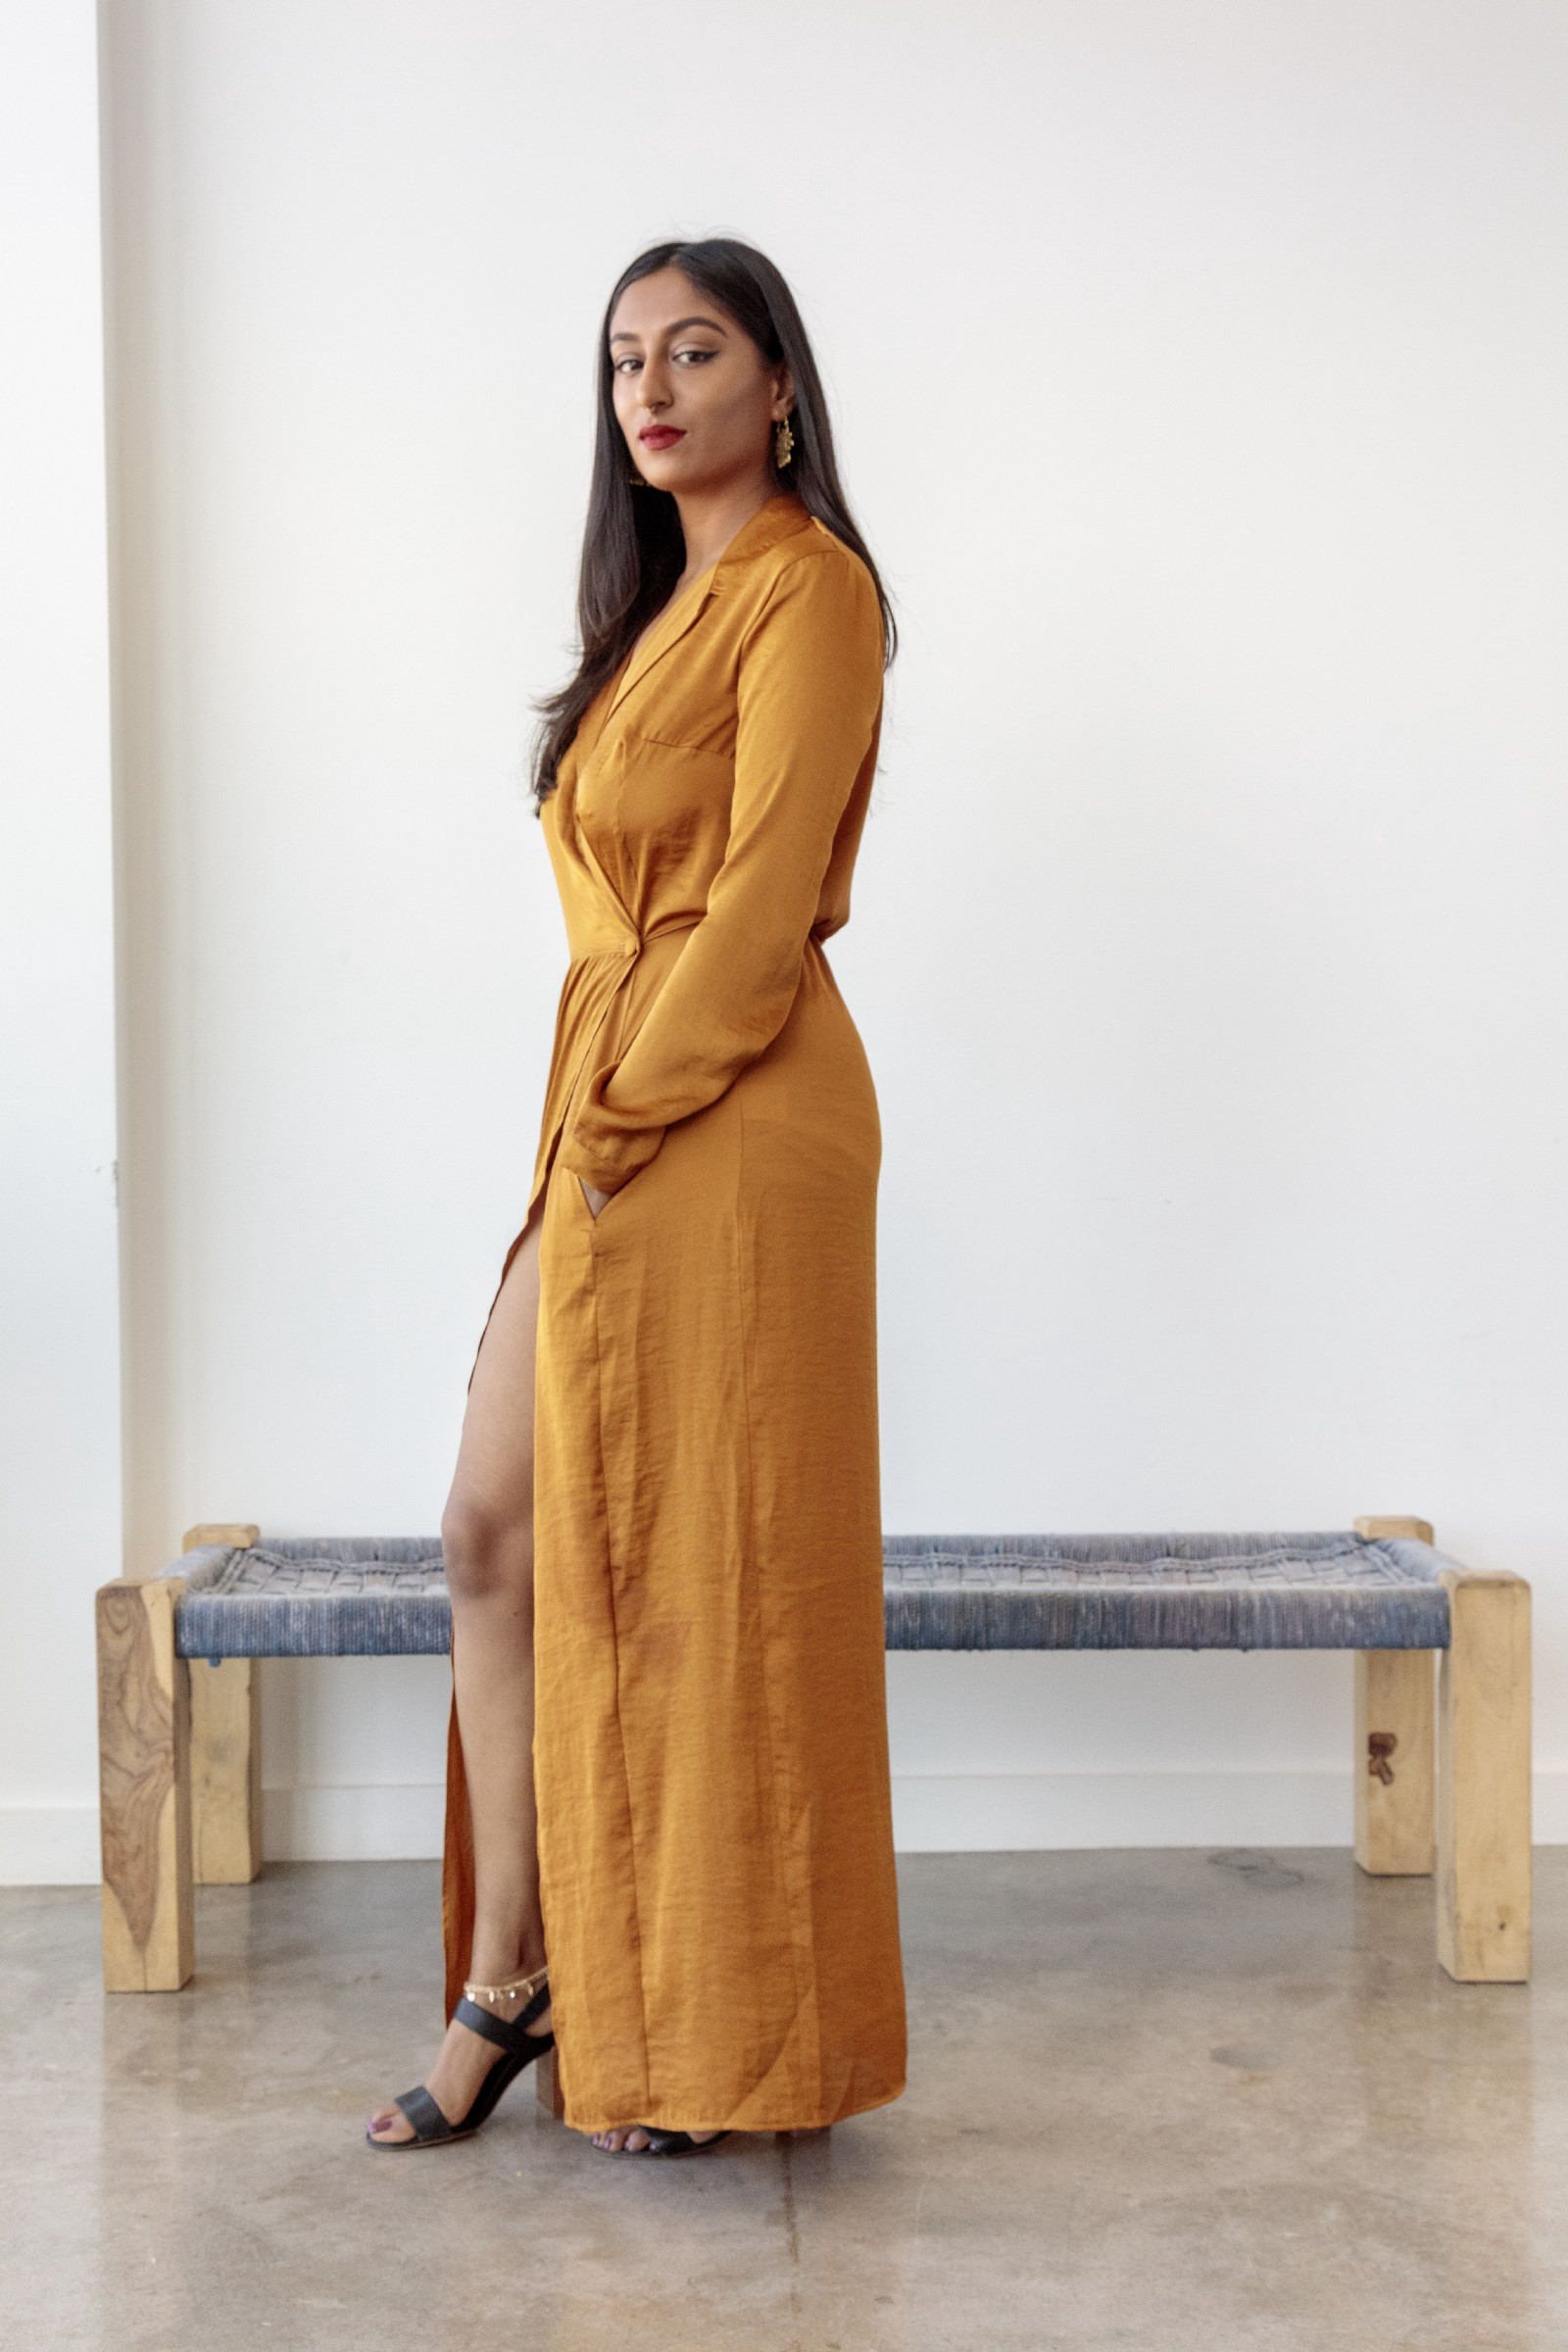 Pavana Reddy, the fierce poet who won our hearts over is wearing the marigold shirt dress by Bastet Noir, photo by: Joshua White